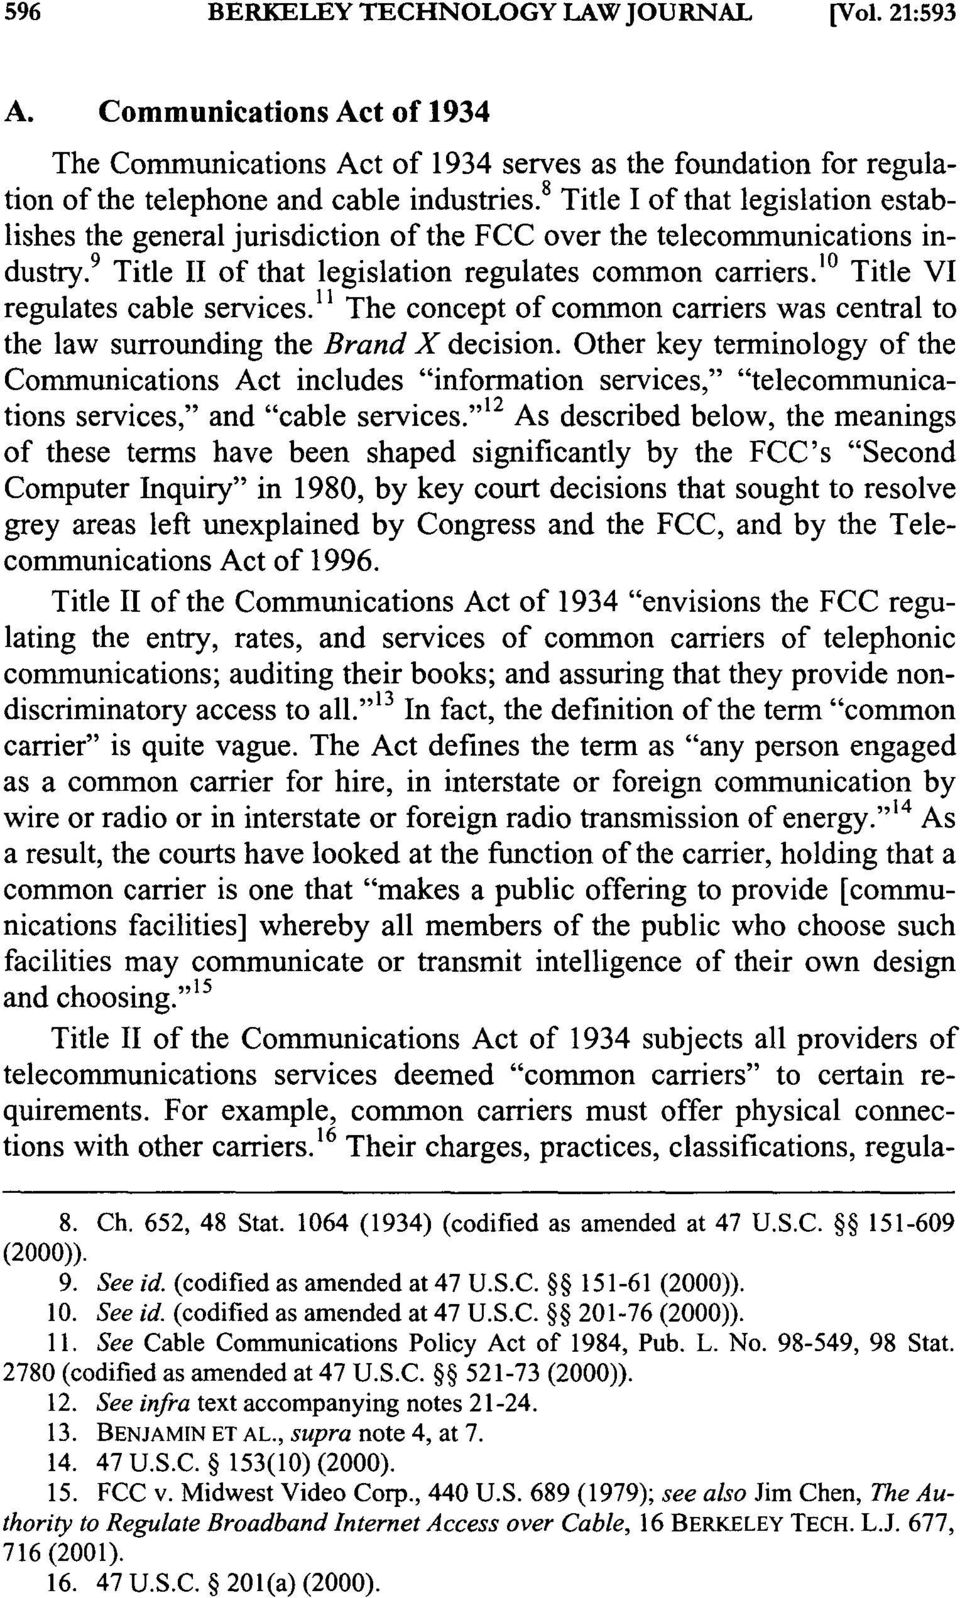 """ 0 Title VI regulates cable services. 11 The concept of common carriers was central to the law surrounding the Brand X decision."